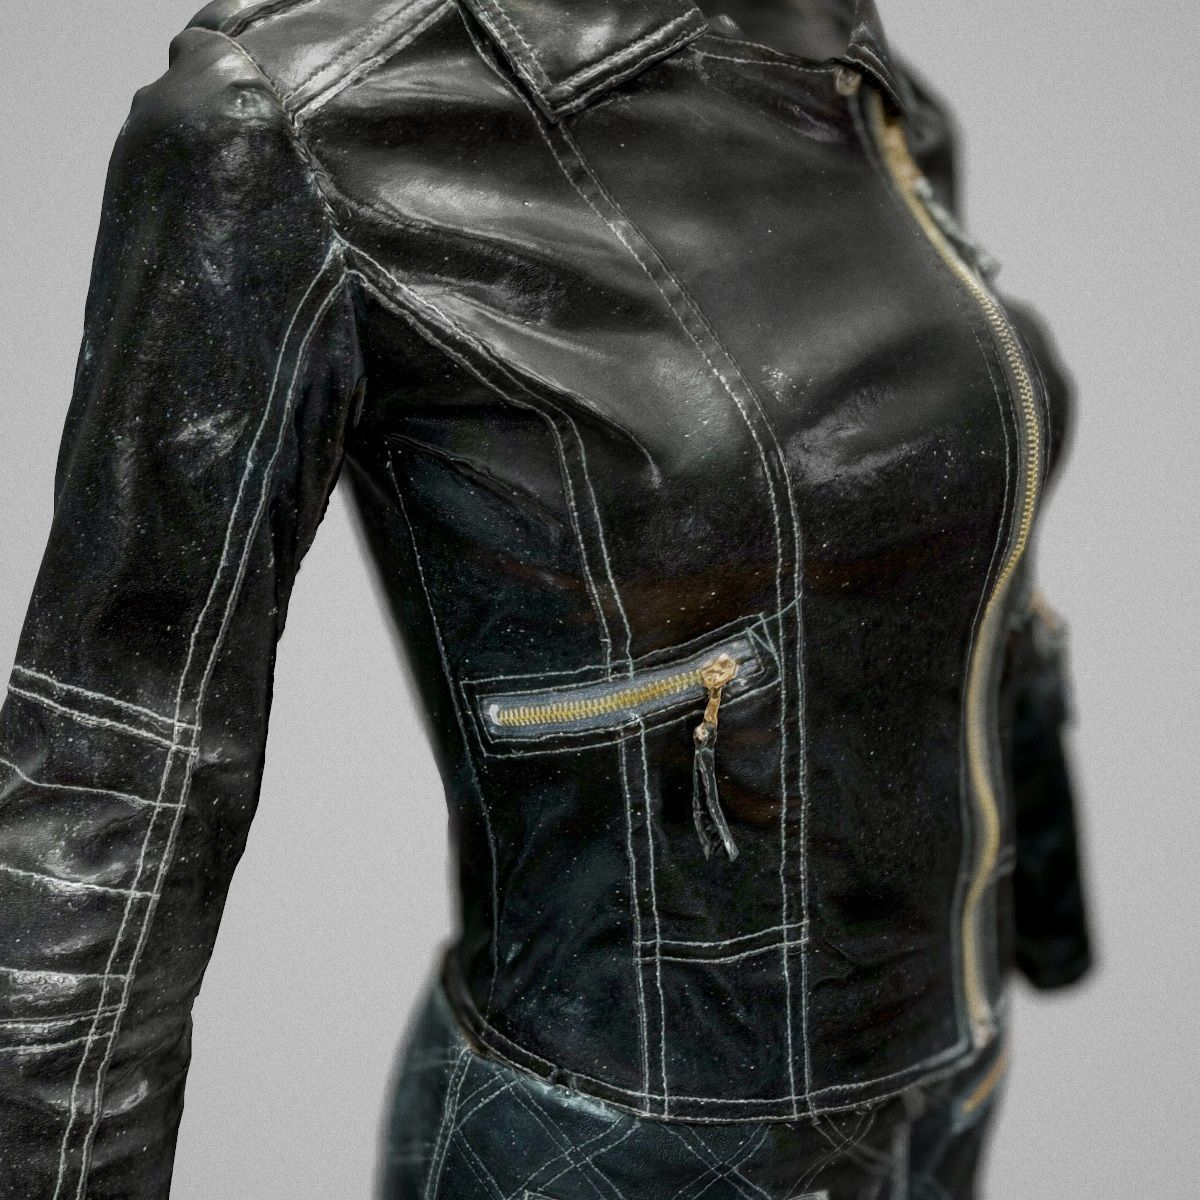 Leather Skirt And Jacket 3d Model Leather Skirt Jackets Clothing Items [ 1200 x 1200 Pixel ]